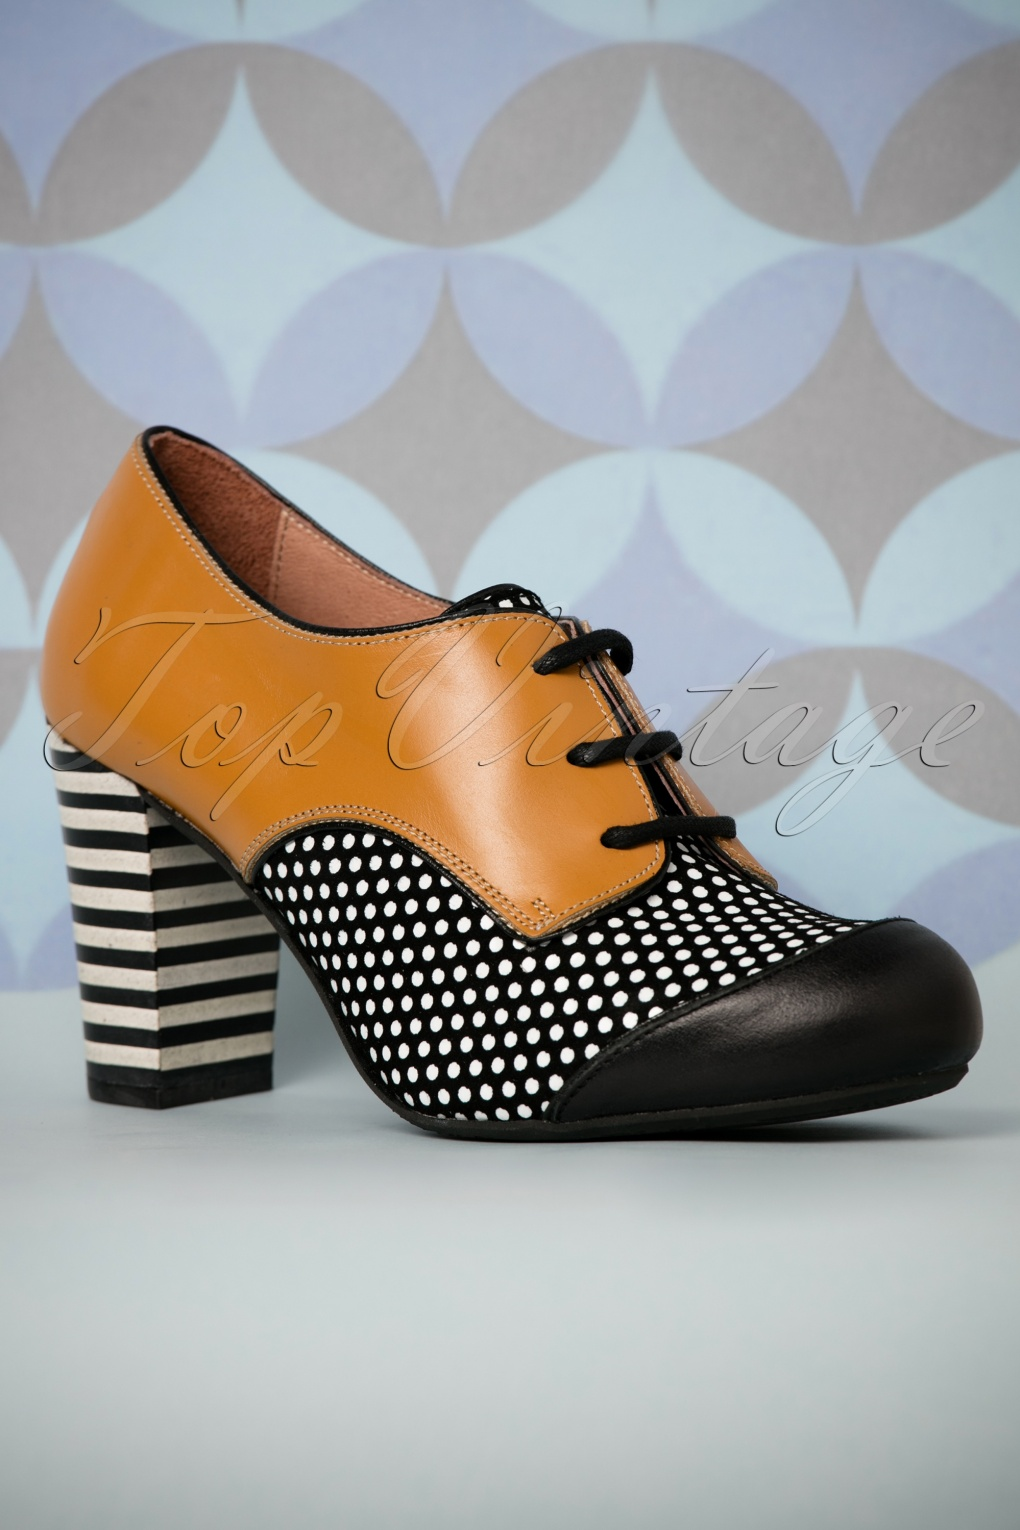 Vintage Style Shoes, Vintage Inspired Shoes 60s Listas Leather Booties in Mustard Yellow £106.76 AT vintagedancer.com